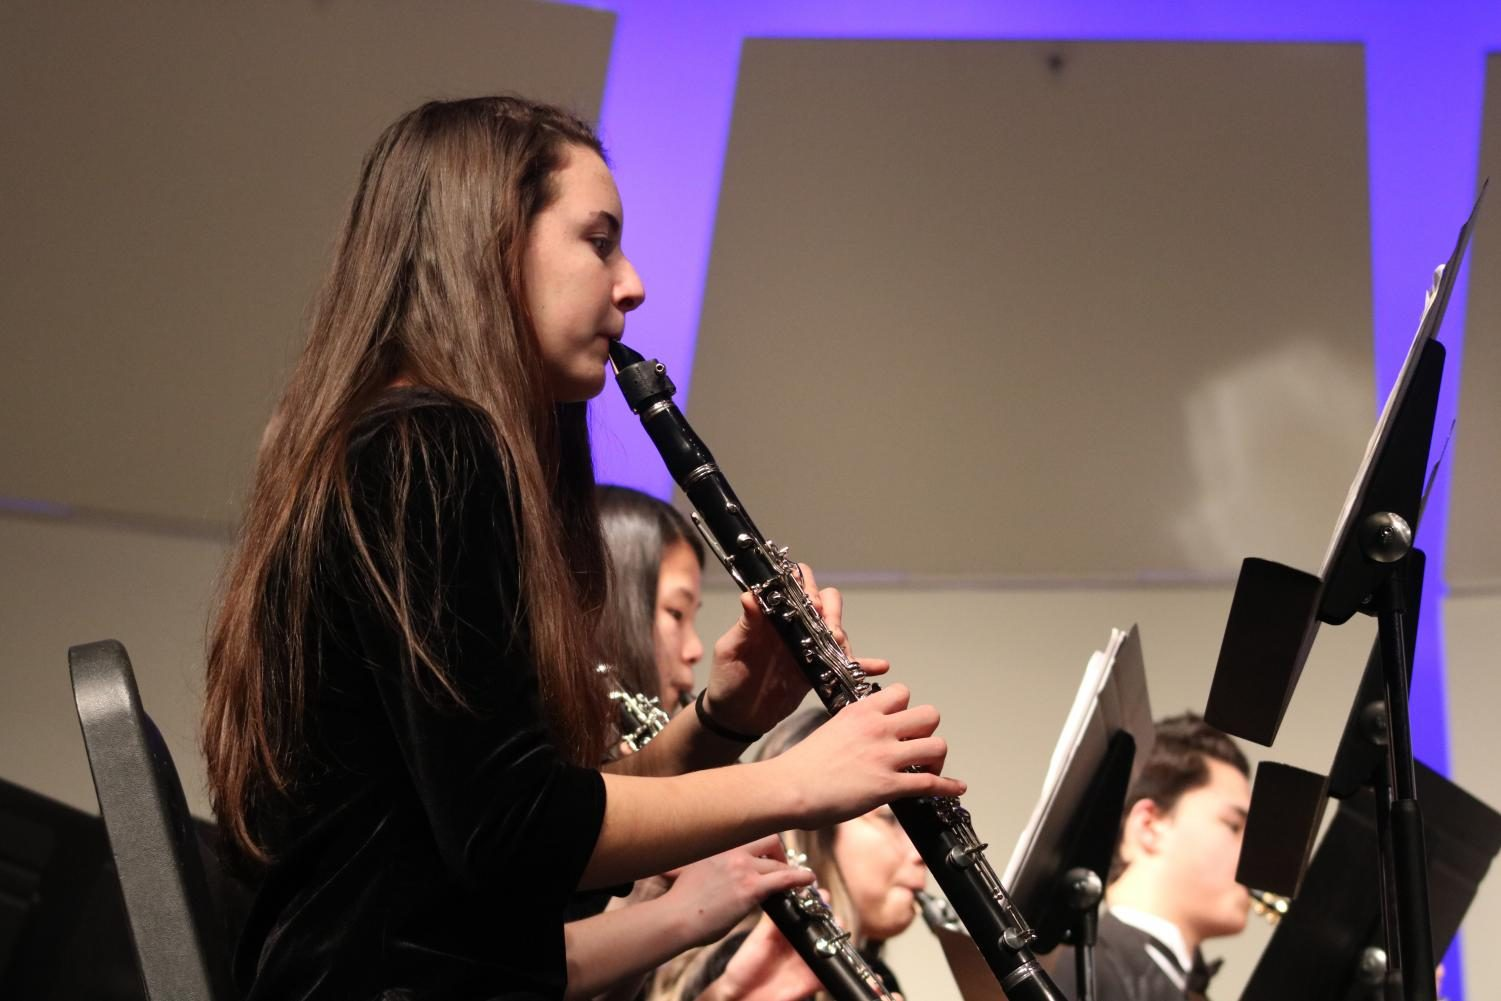 Phebe+Hammond%2C+sophomore%2C+plays+her+clarinet+at+the+band+concert.